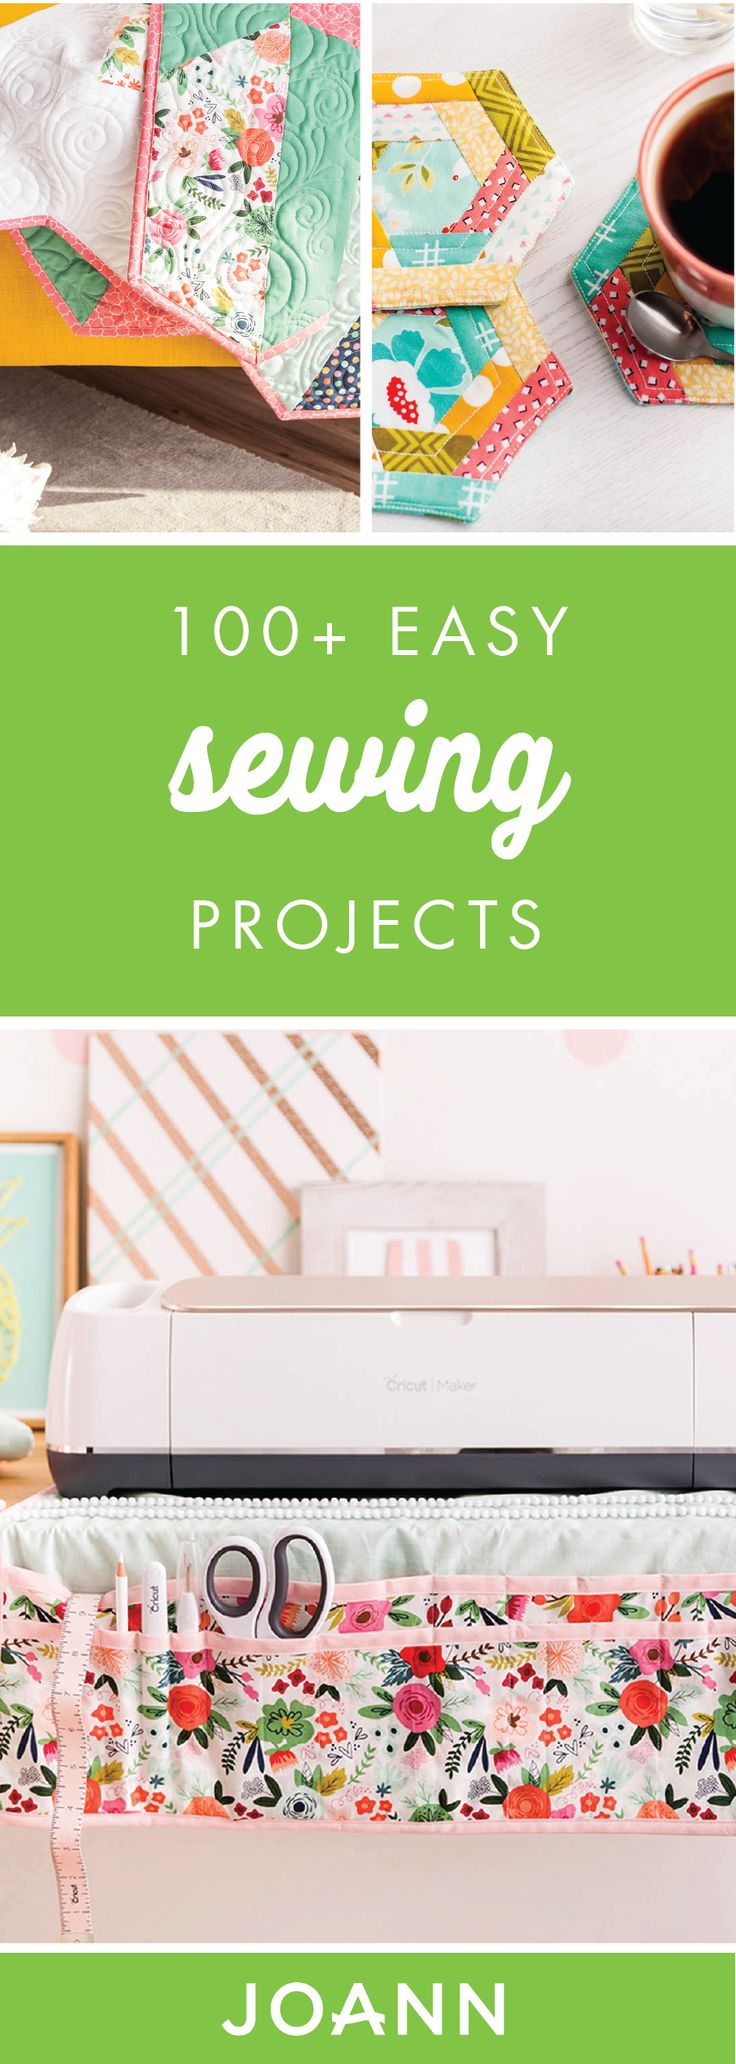 From fabric covered letters to flower pot covers, this collection of 100+ Easy Sewing Projects from JOANN has everything and more! If you're looking for a creative activity to beat the winter blues or just want to up your sewing skills, these creations are a great place to start.